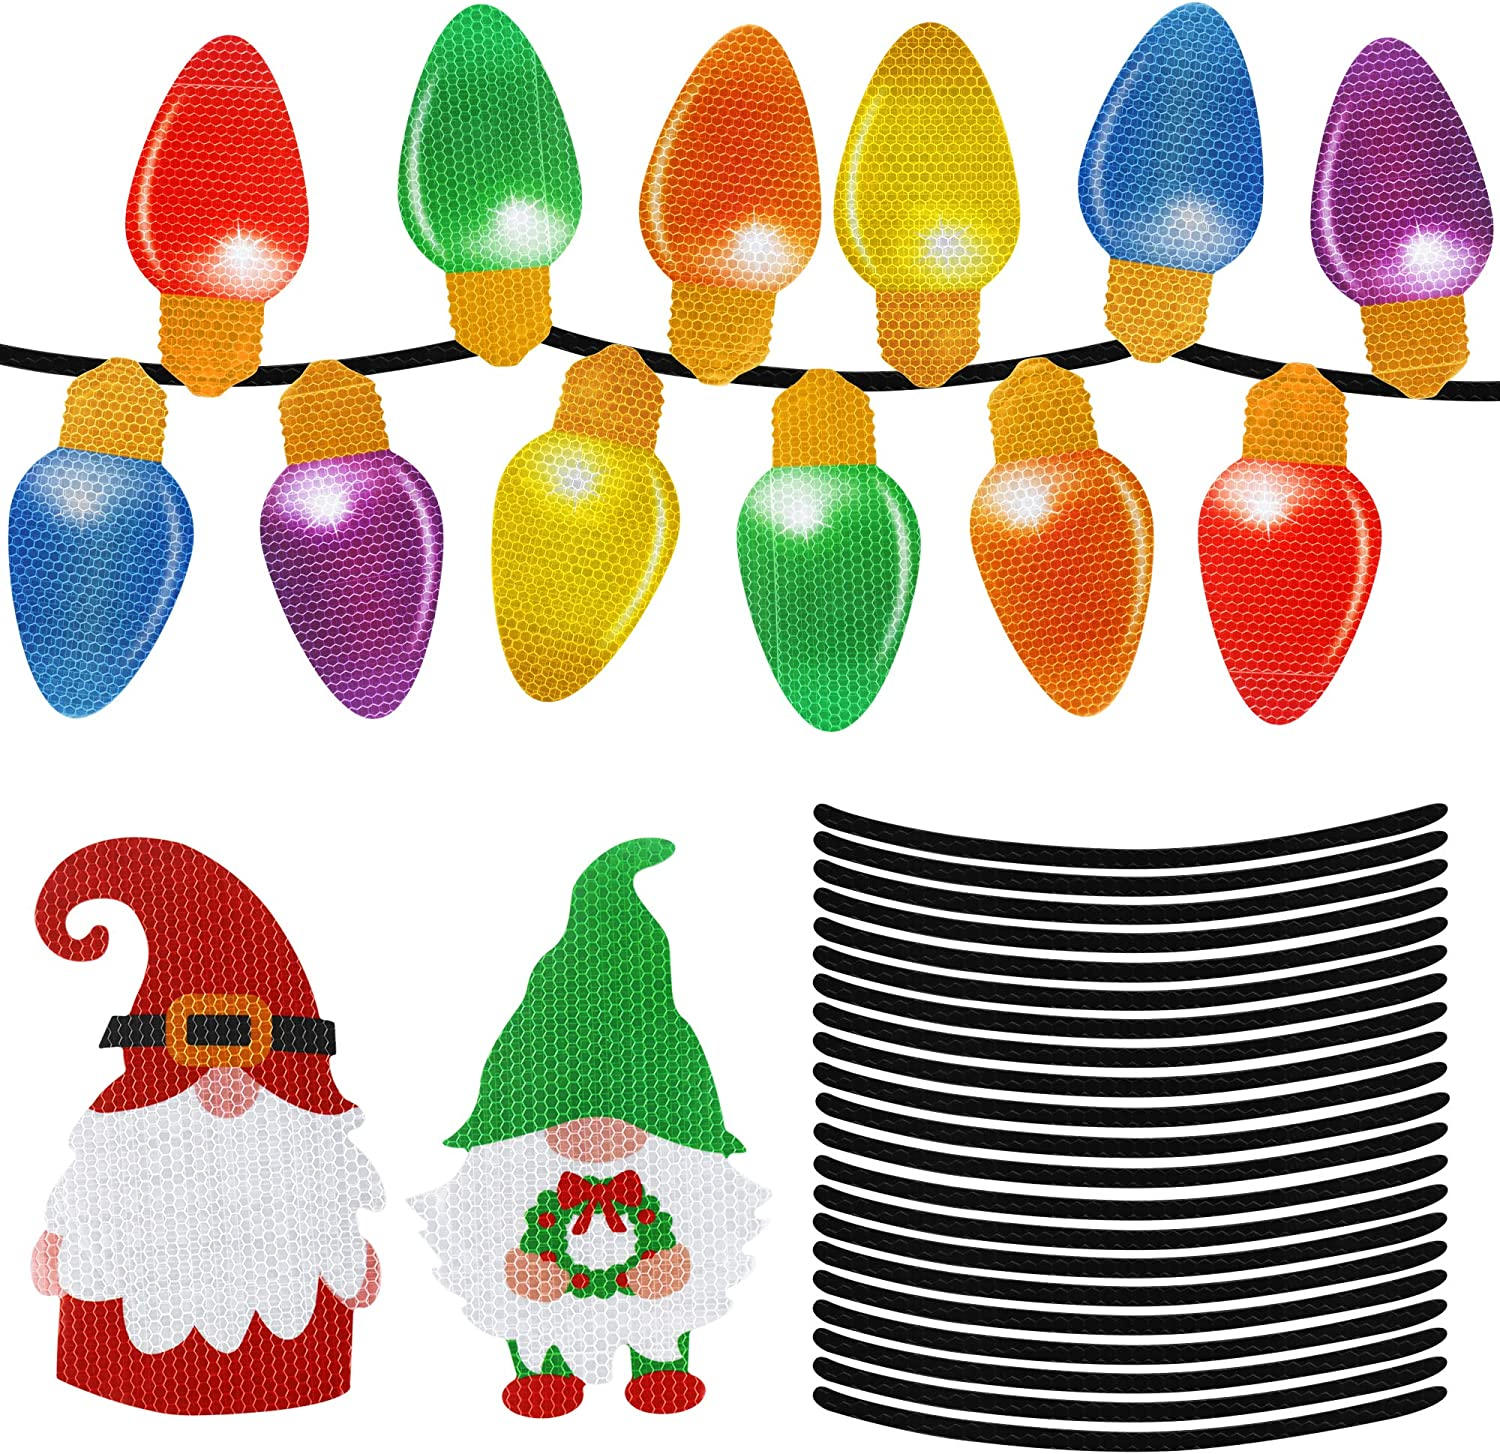 38Pcs Christmas Reflective Car Magnets Set - Christmas Decorations - Christmas Gnome Magnets Decor - Xmas Light Bulb Magnets Stickers for Car Refrigerator Garage Door - Xmas Holiday Decorations